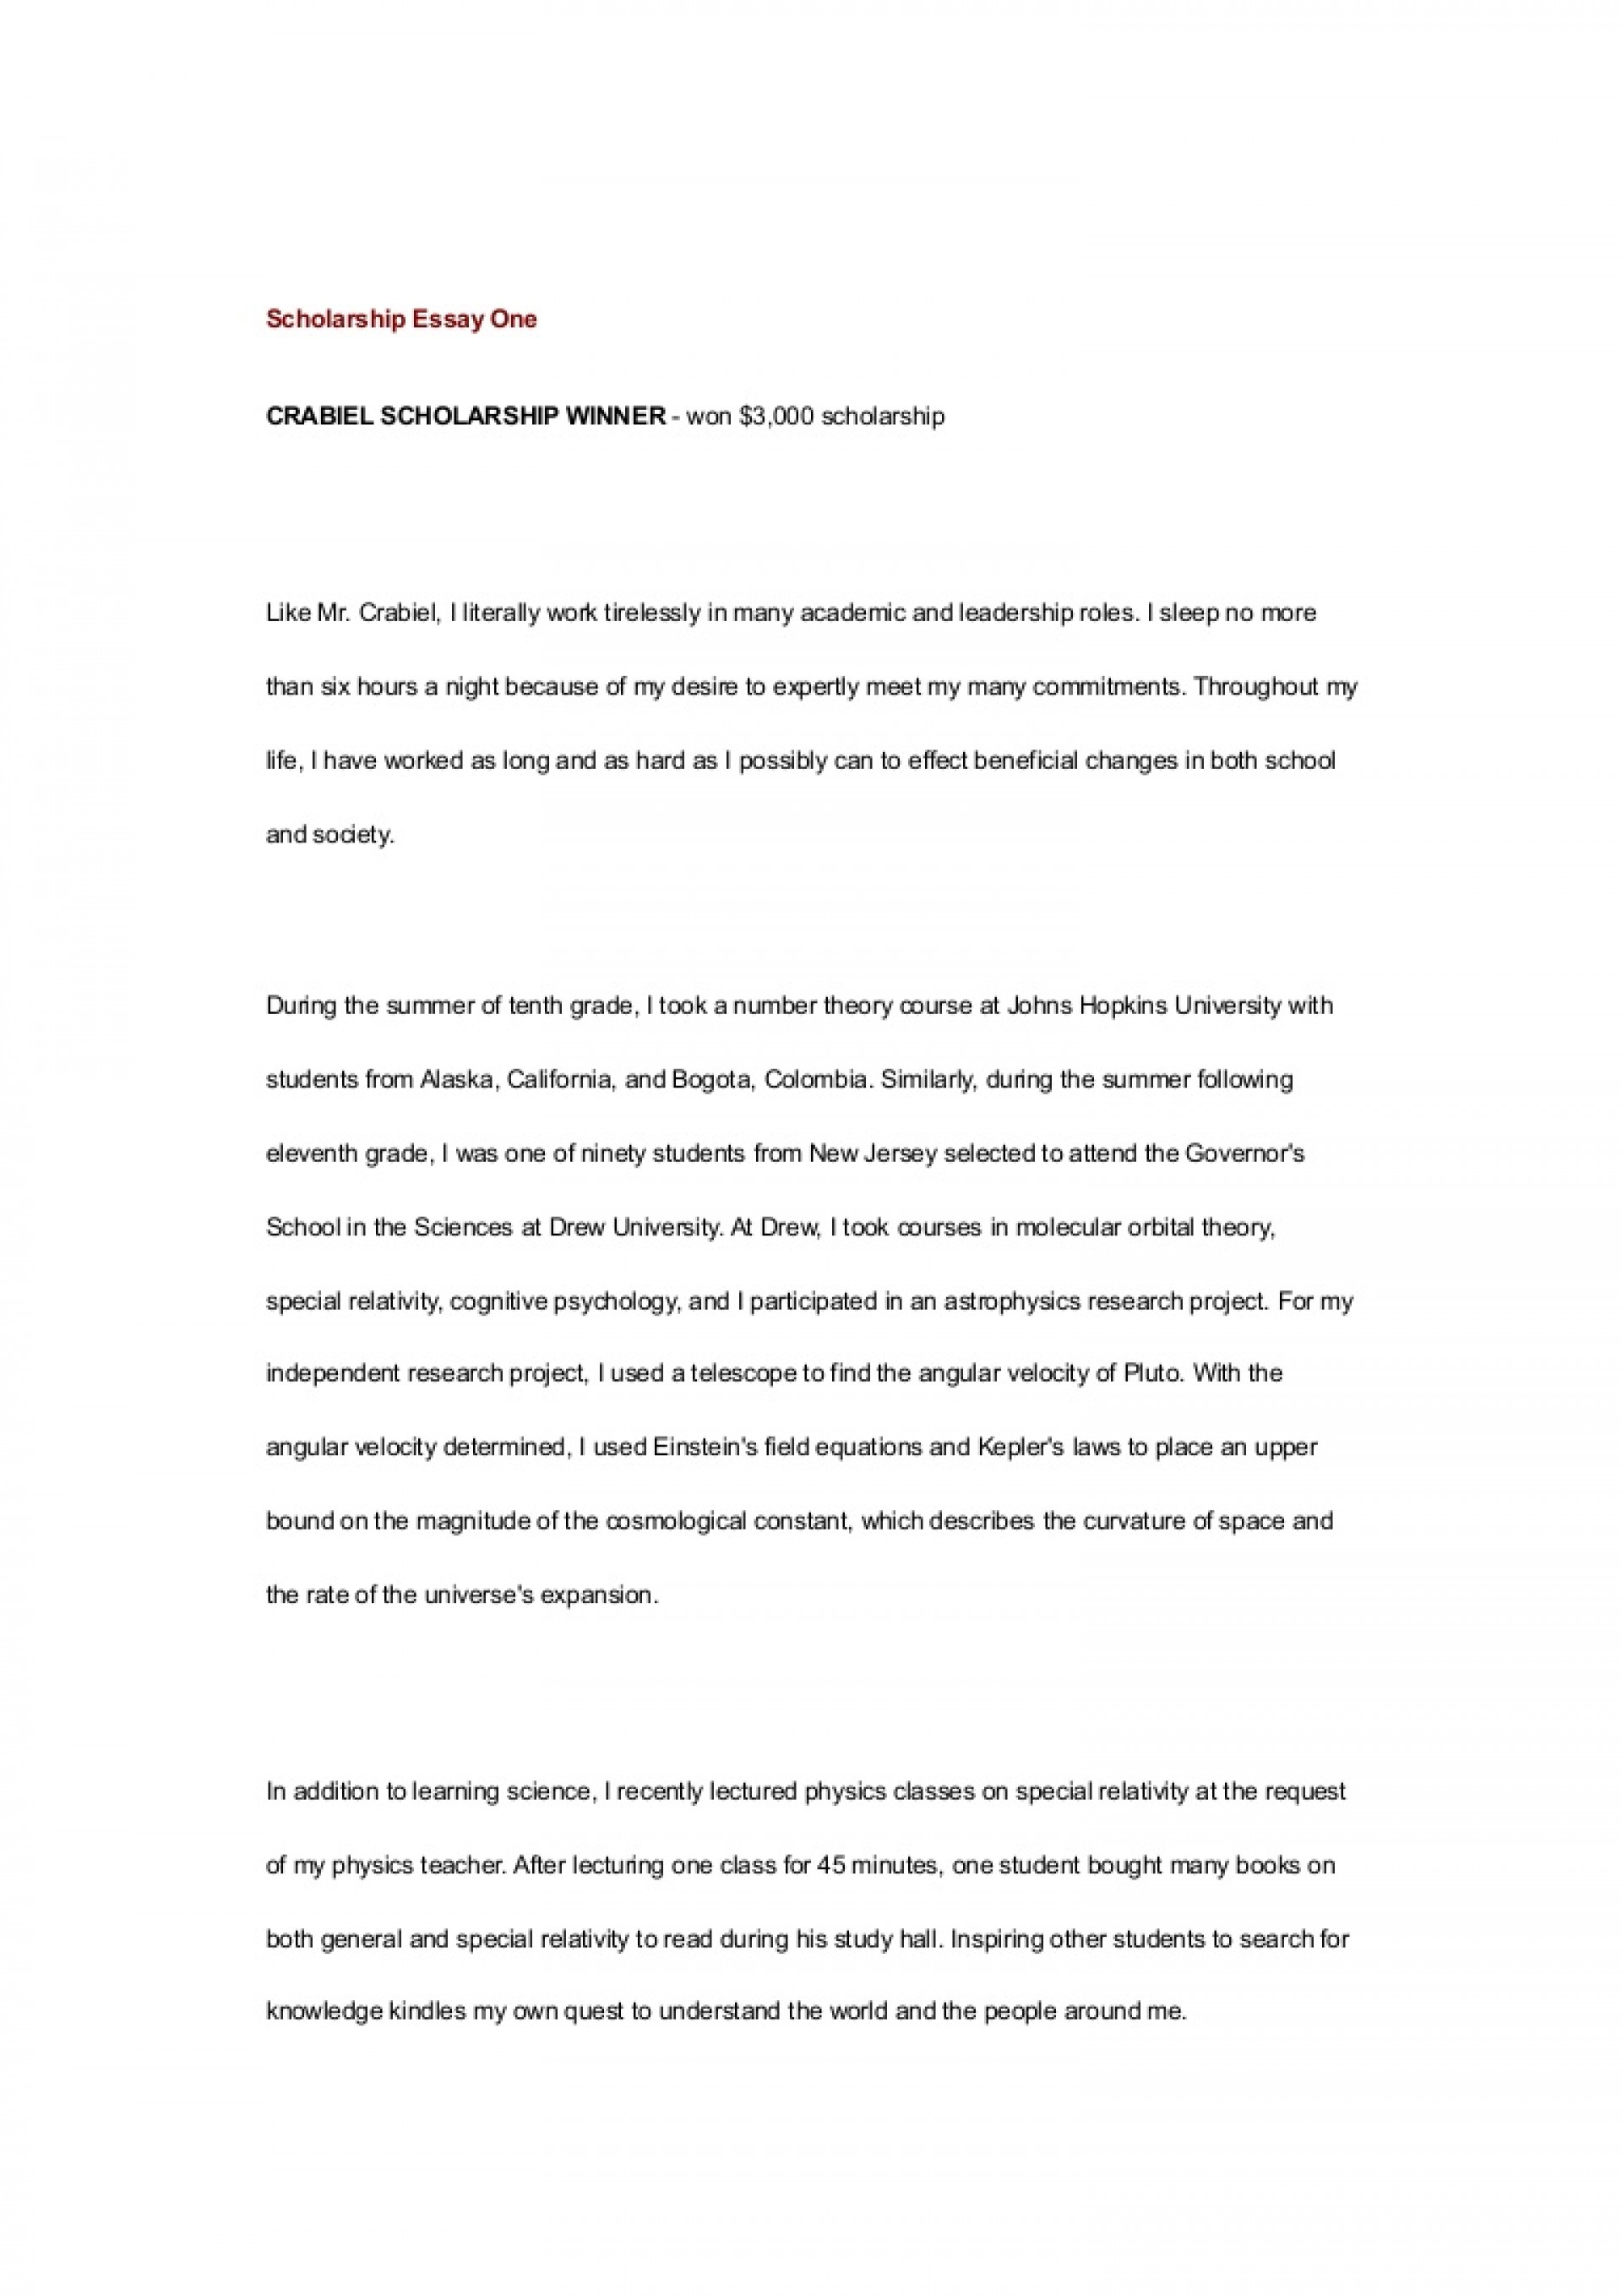 005 Scholarship Essay Examples Example Scholarshipessayone Phpapp01 Thumbnail Impressive About Career Goals Pdf Winning For Study Abroad 1920